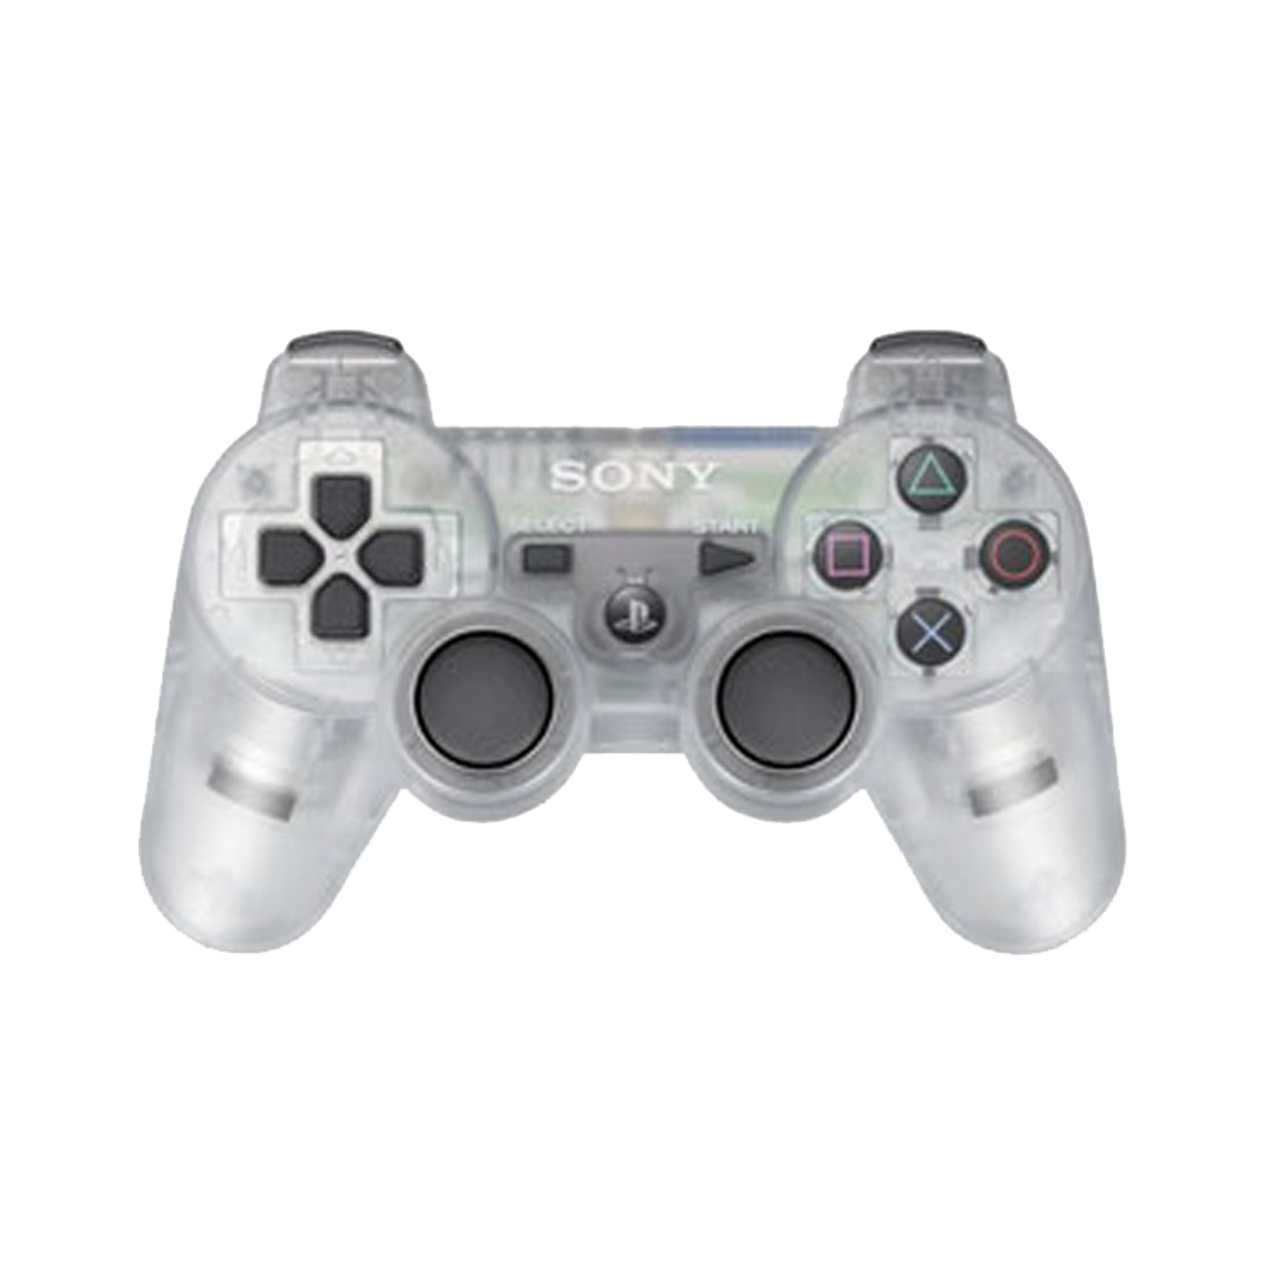 Sony Playstation 3 Dualshock 3 Game Pad Ps3 Wireless Bluetooth Controller Frost Clear Custom Game Case